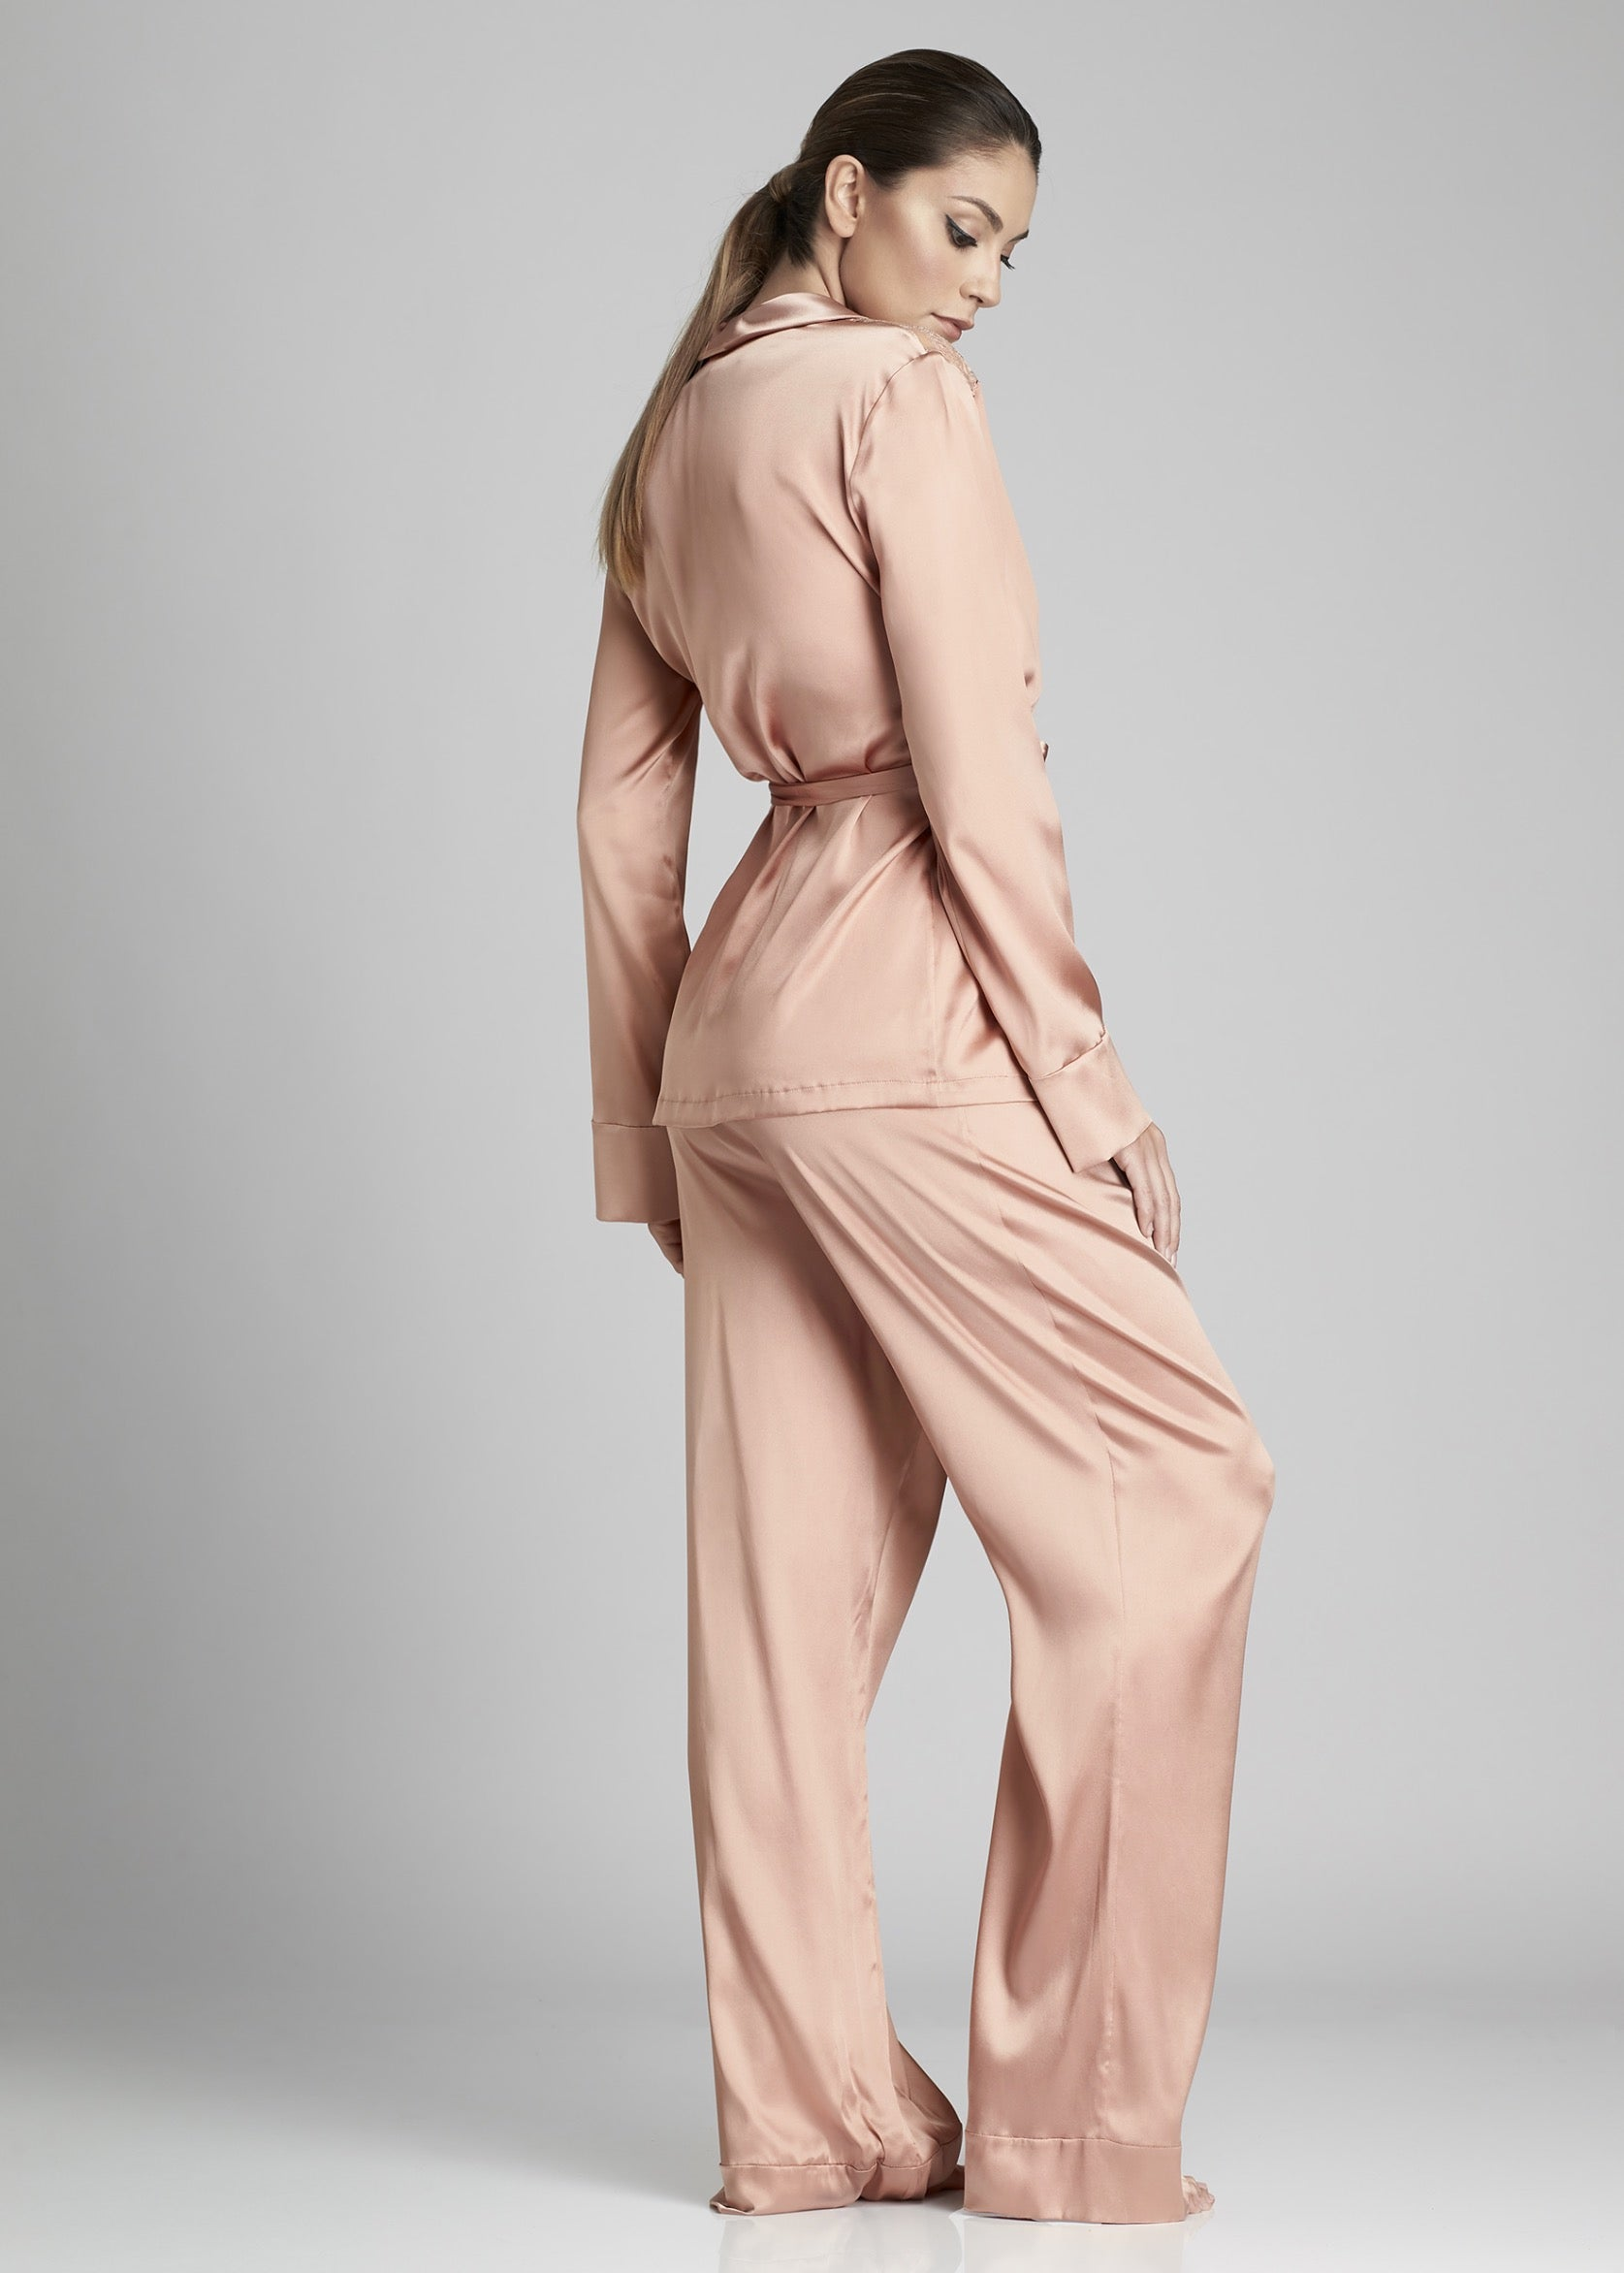 Desert Rose Pyjama Pants in Rose Gold - I.D. Sarrieri